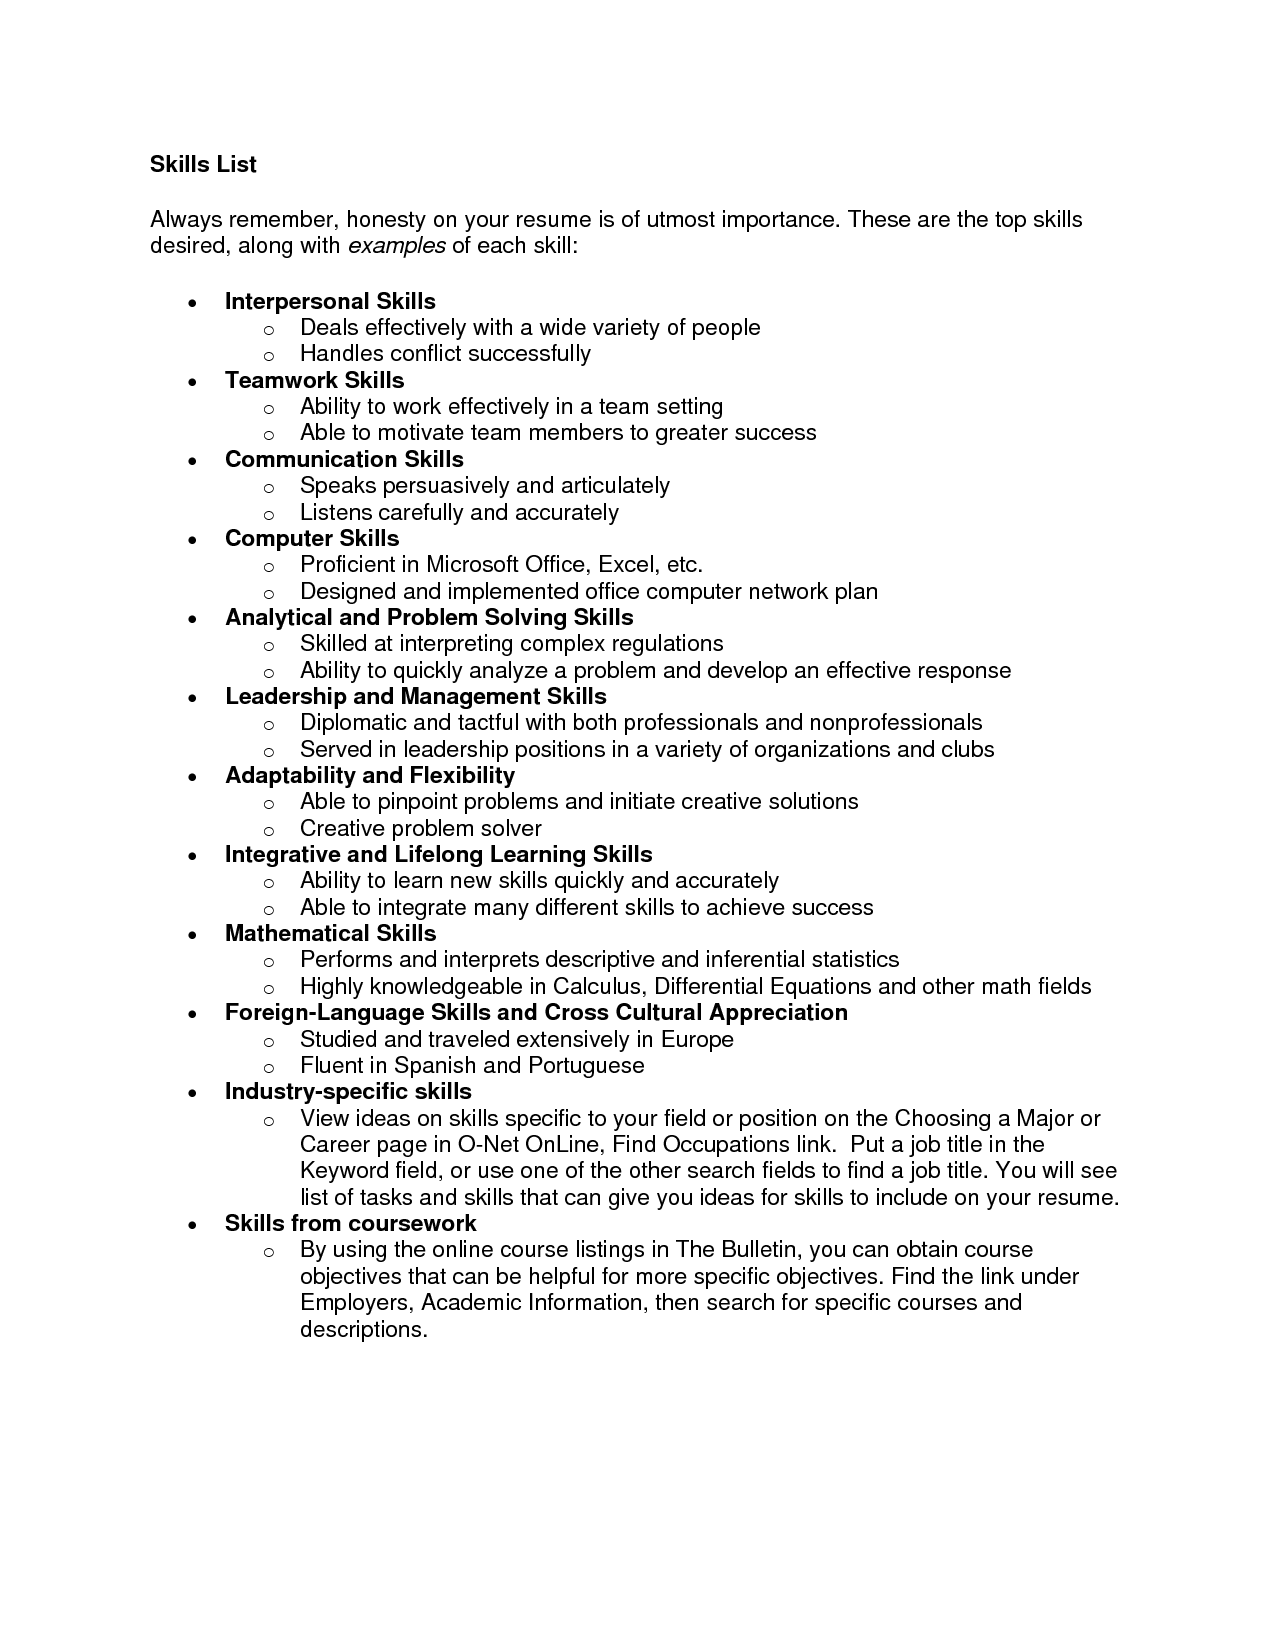 Resume Skills List Examples Neva Commongroundsapex Co